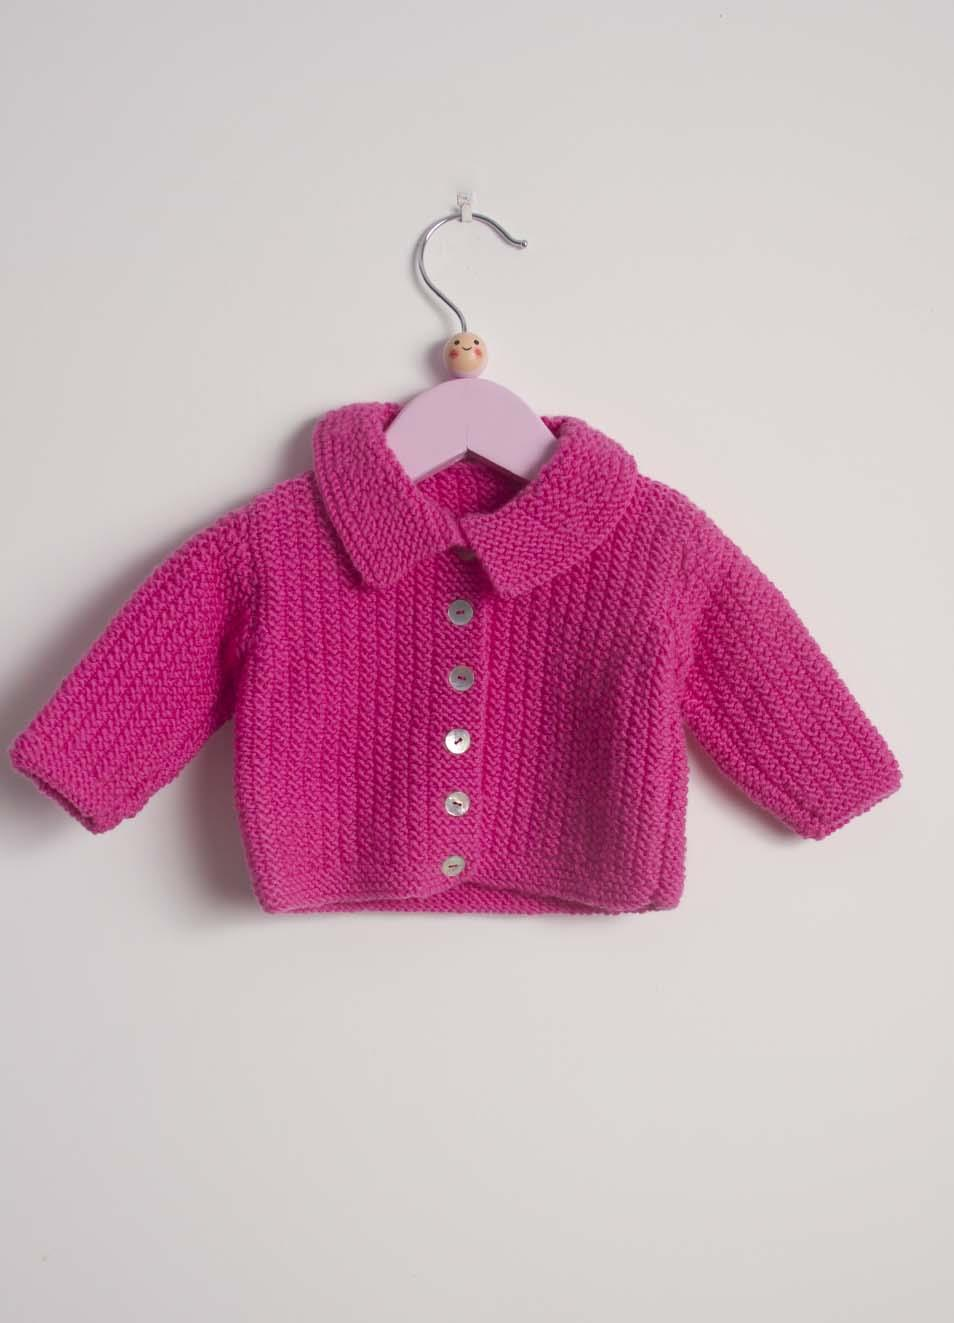 competitive price c068b 81548 Fuxia wool cardigan sweater for new born